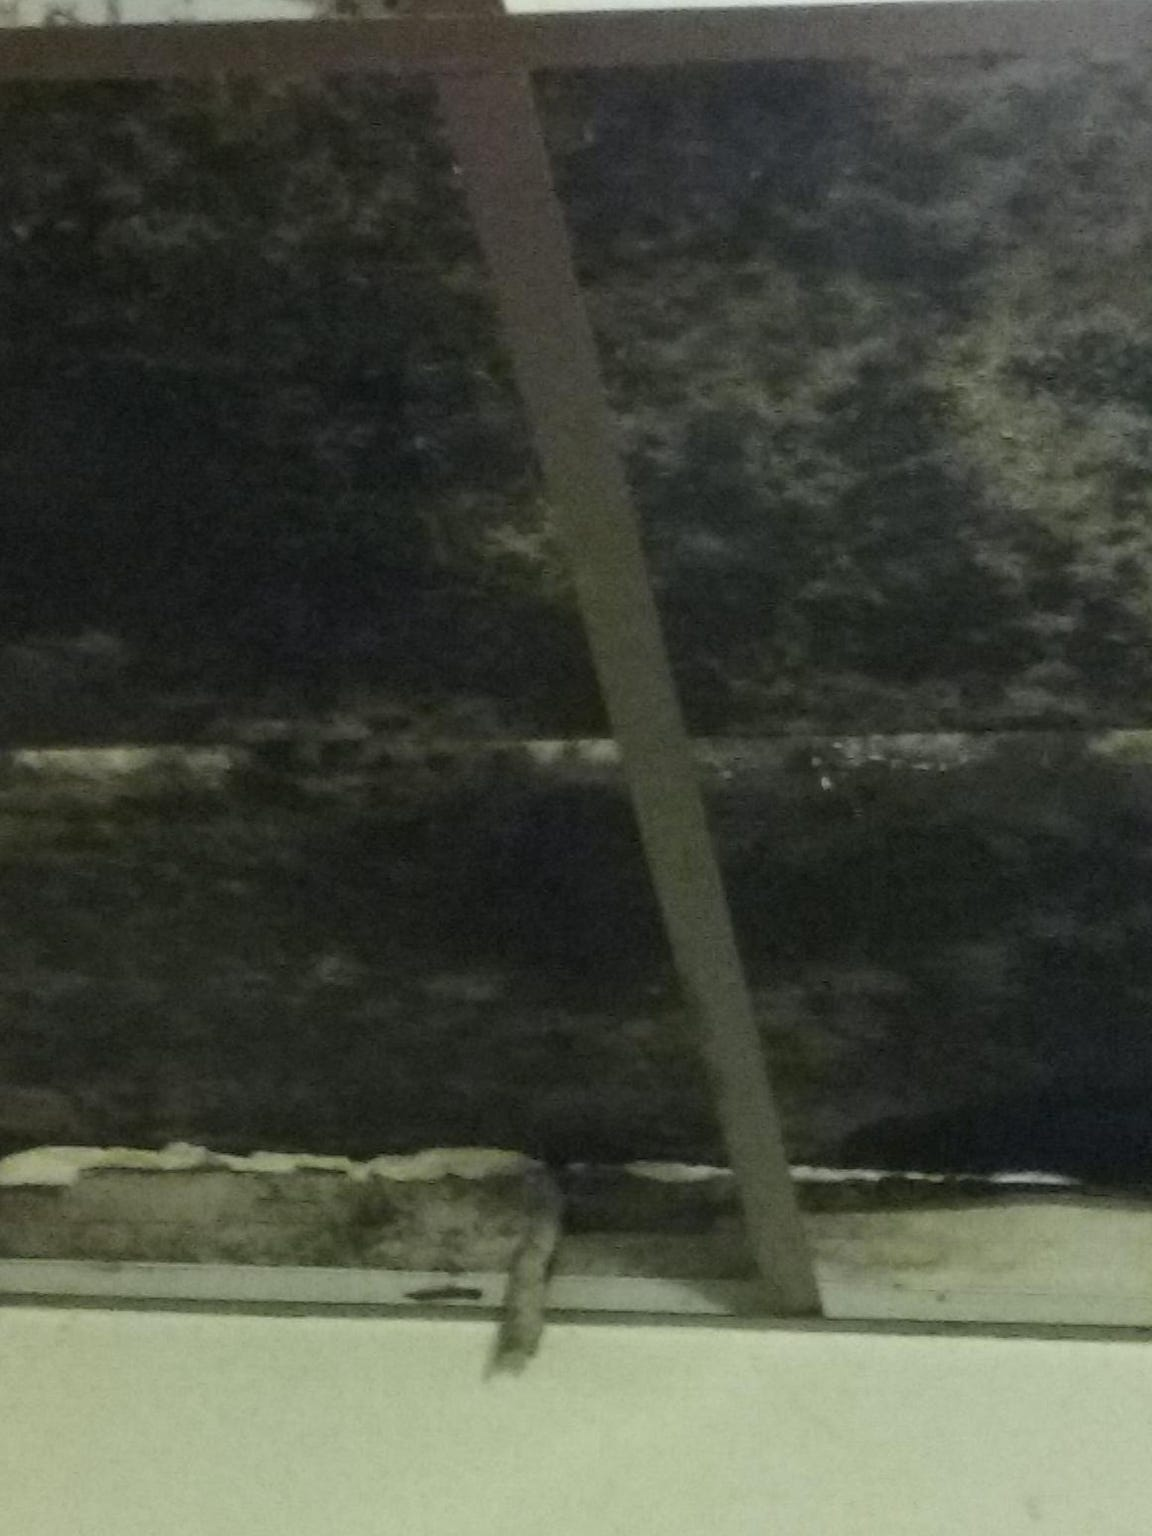 Mold visible on the ceiling of Jashauna Creadle's bedroom